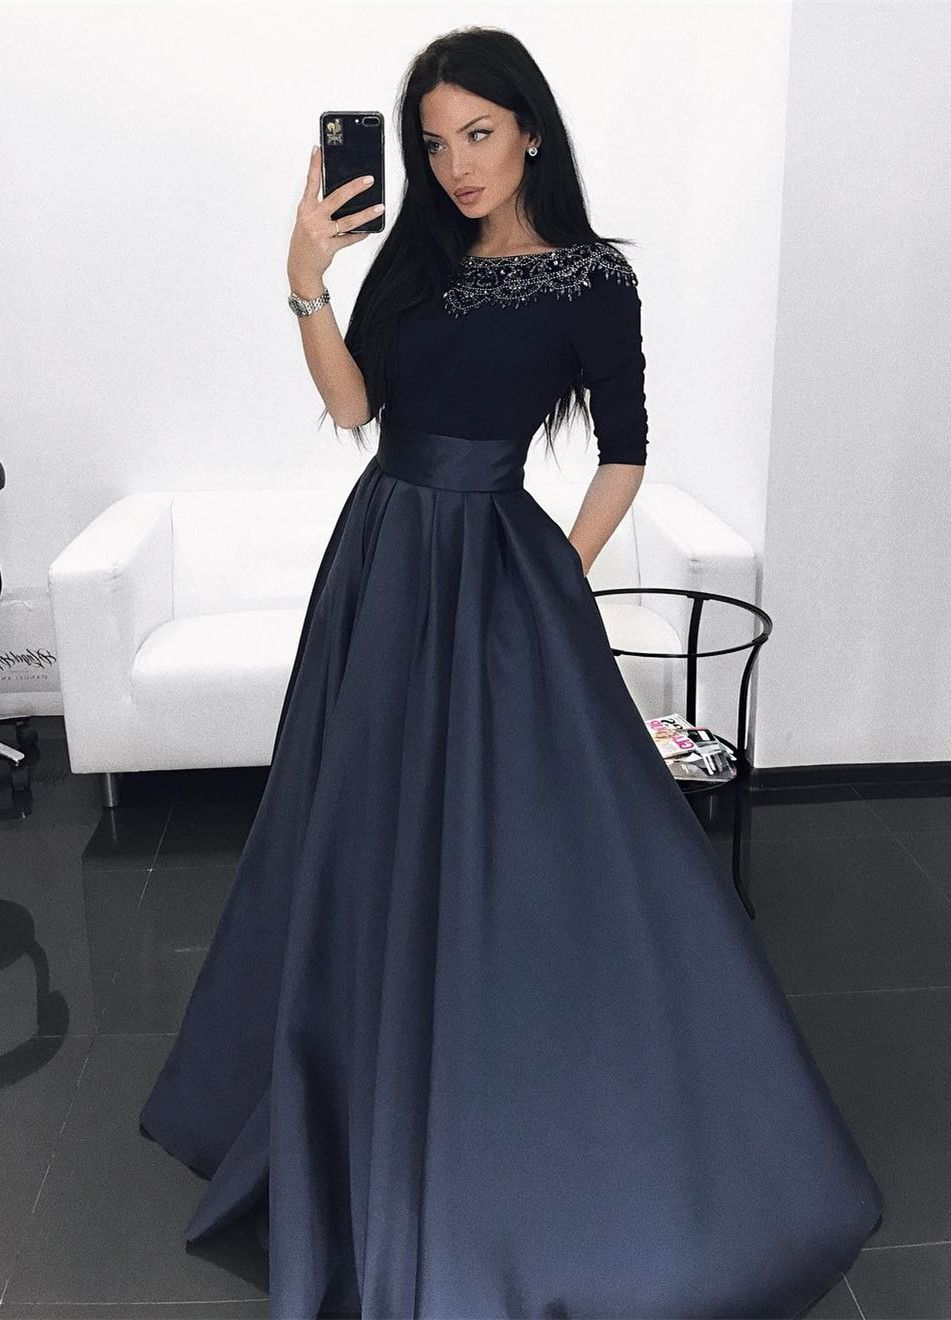 Aline bateau dark navy satin evening prom dress with beading in